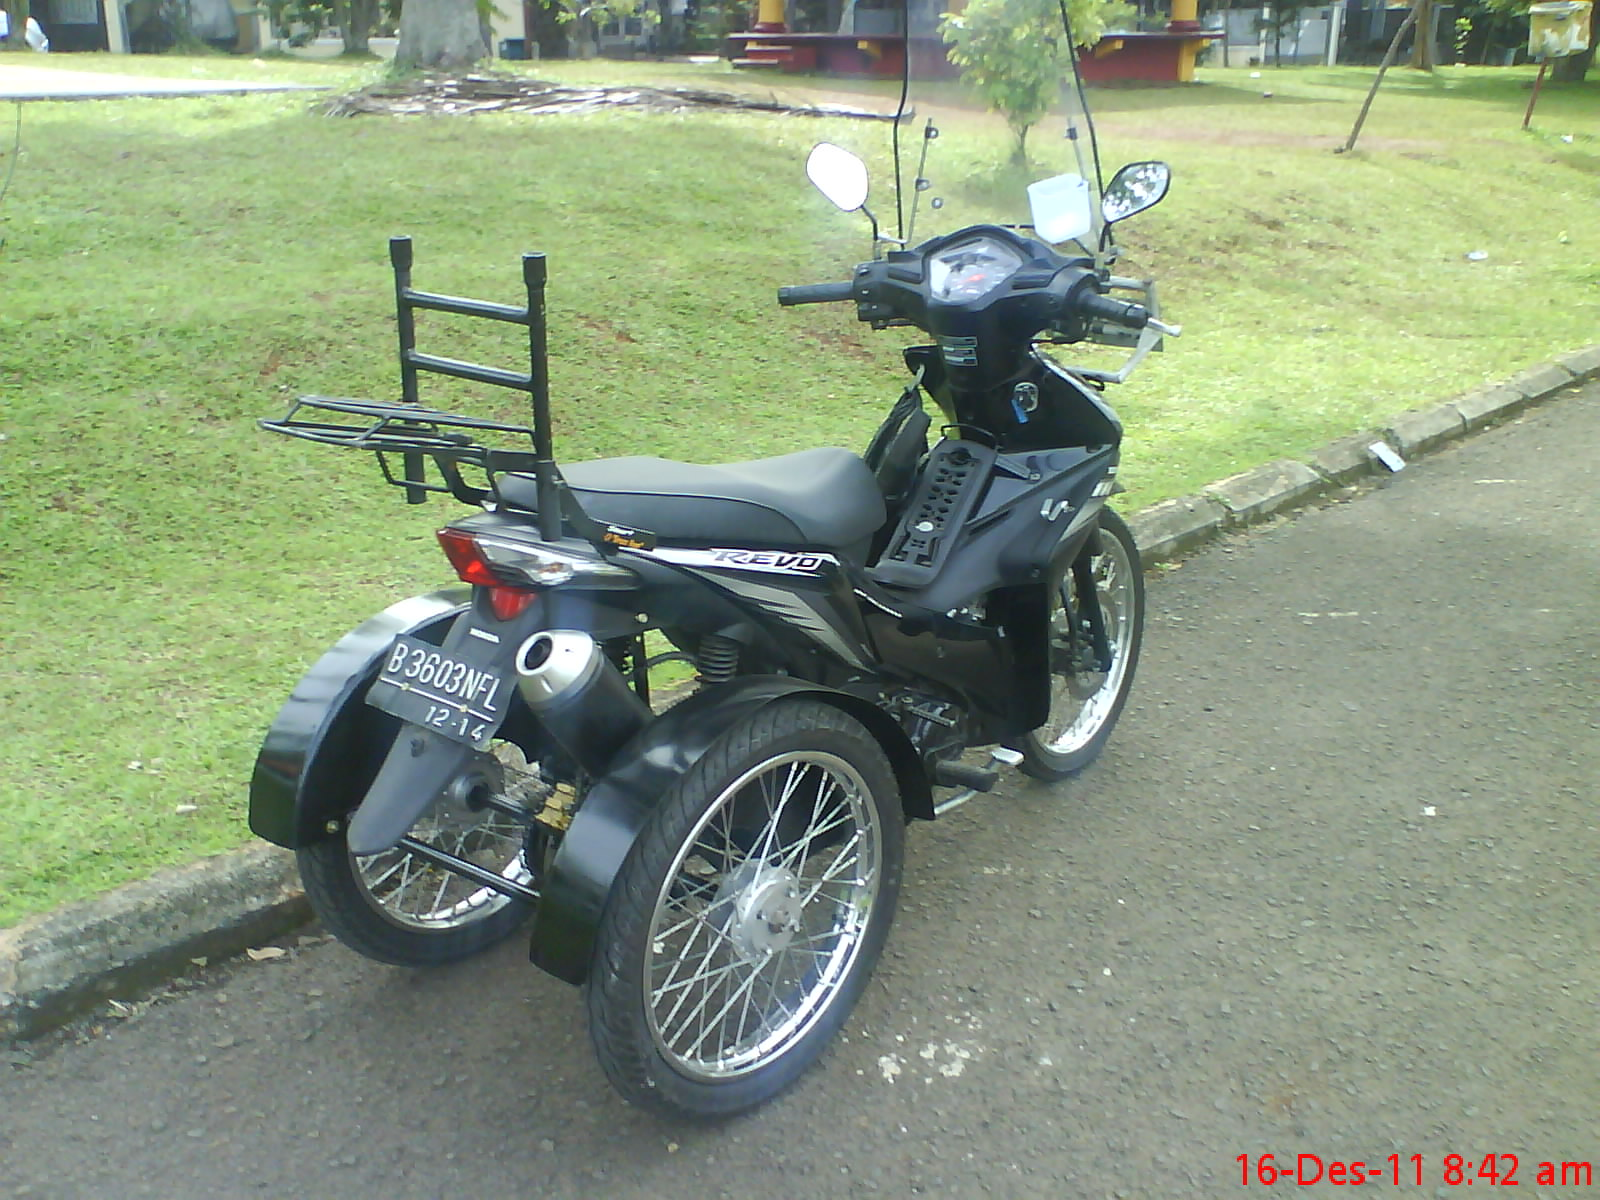 referensi motor modifikasi roda 3